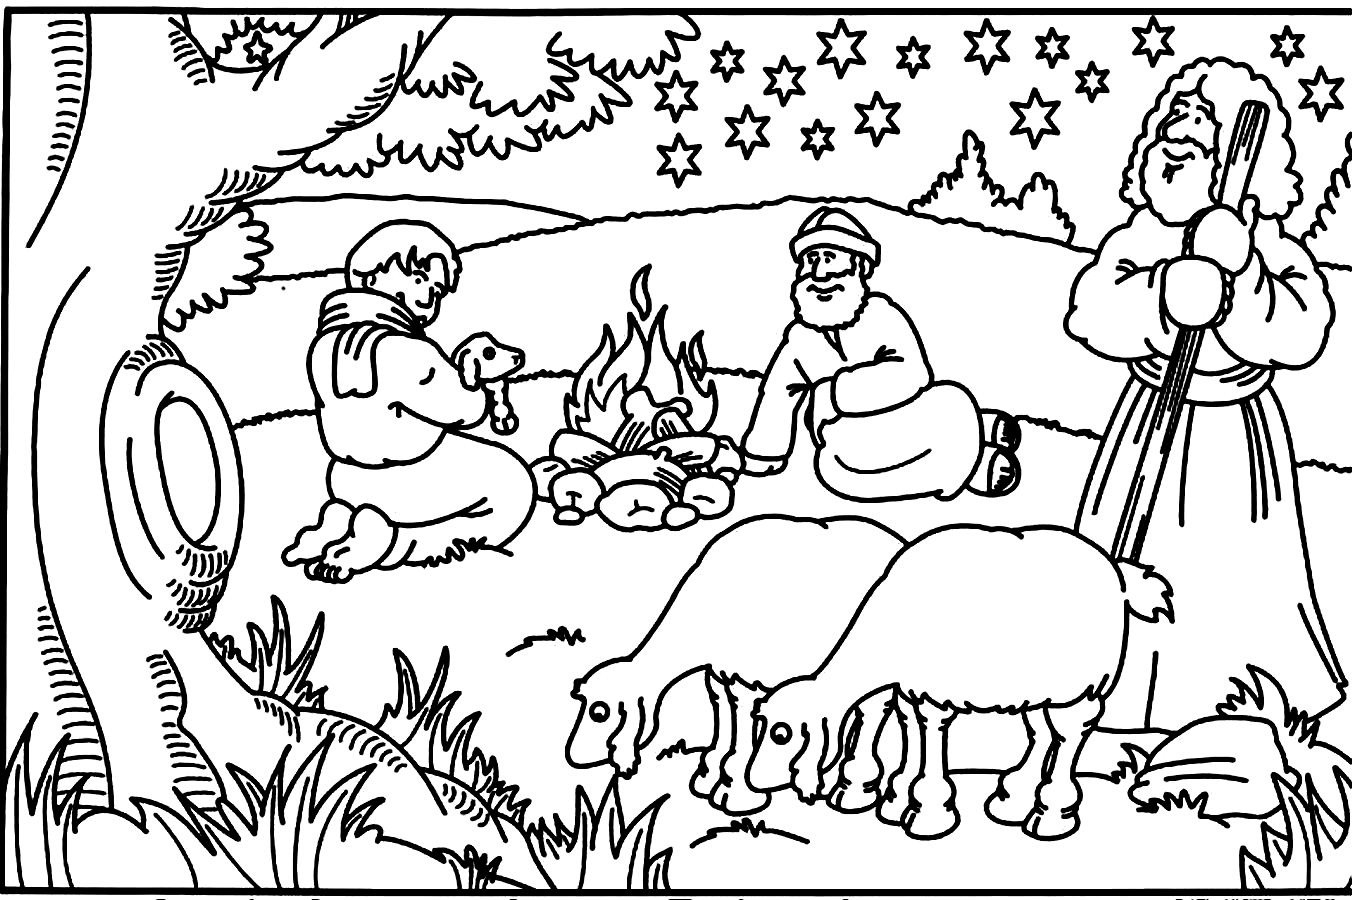 childrens bible study coloring pages - photo#1